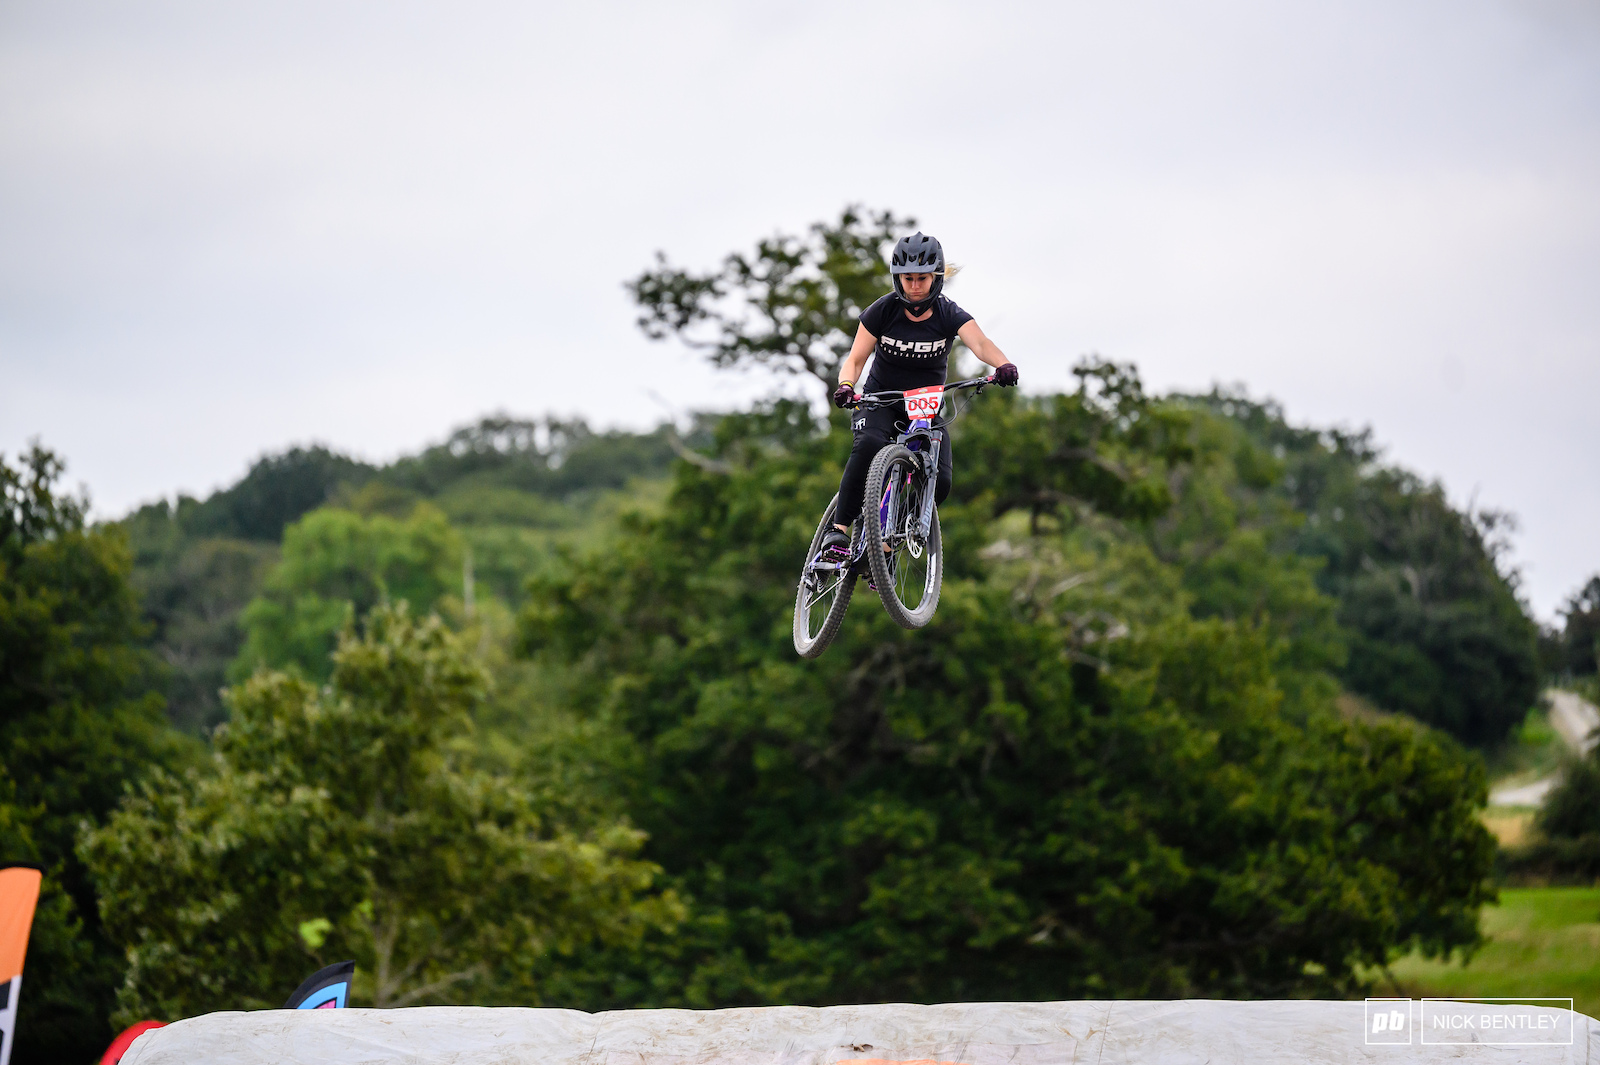 Suzanne Lacey sending it for the girls